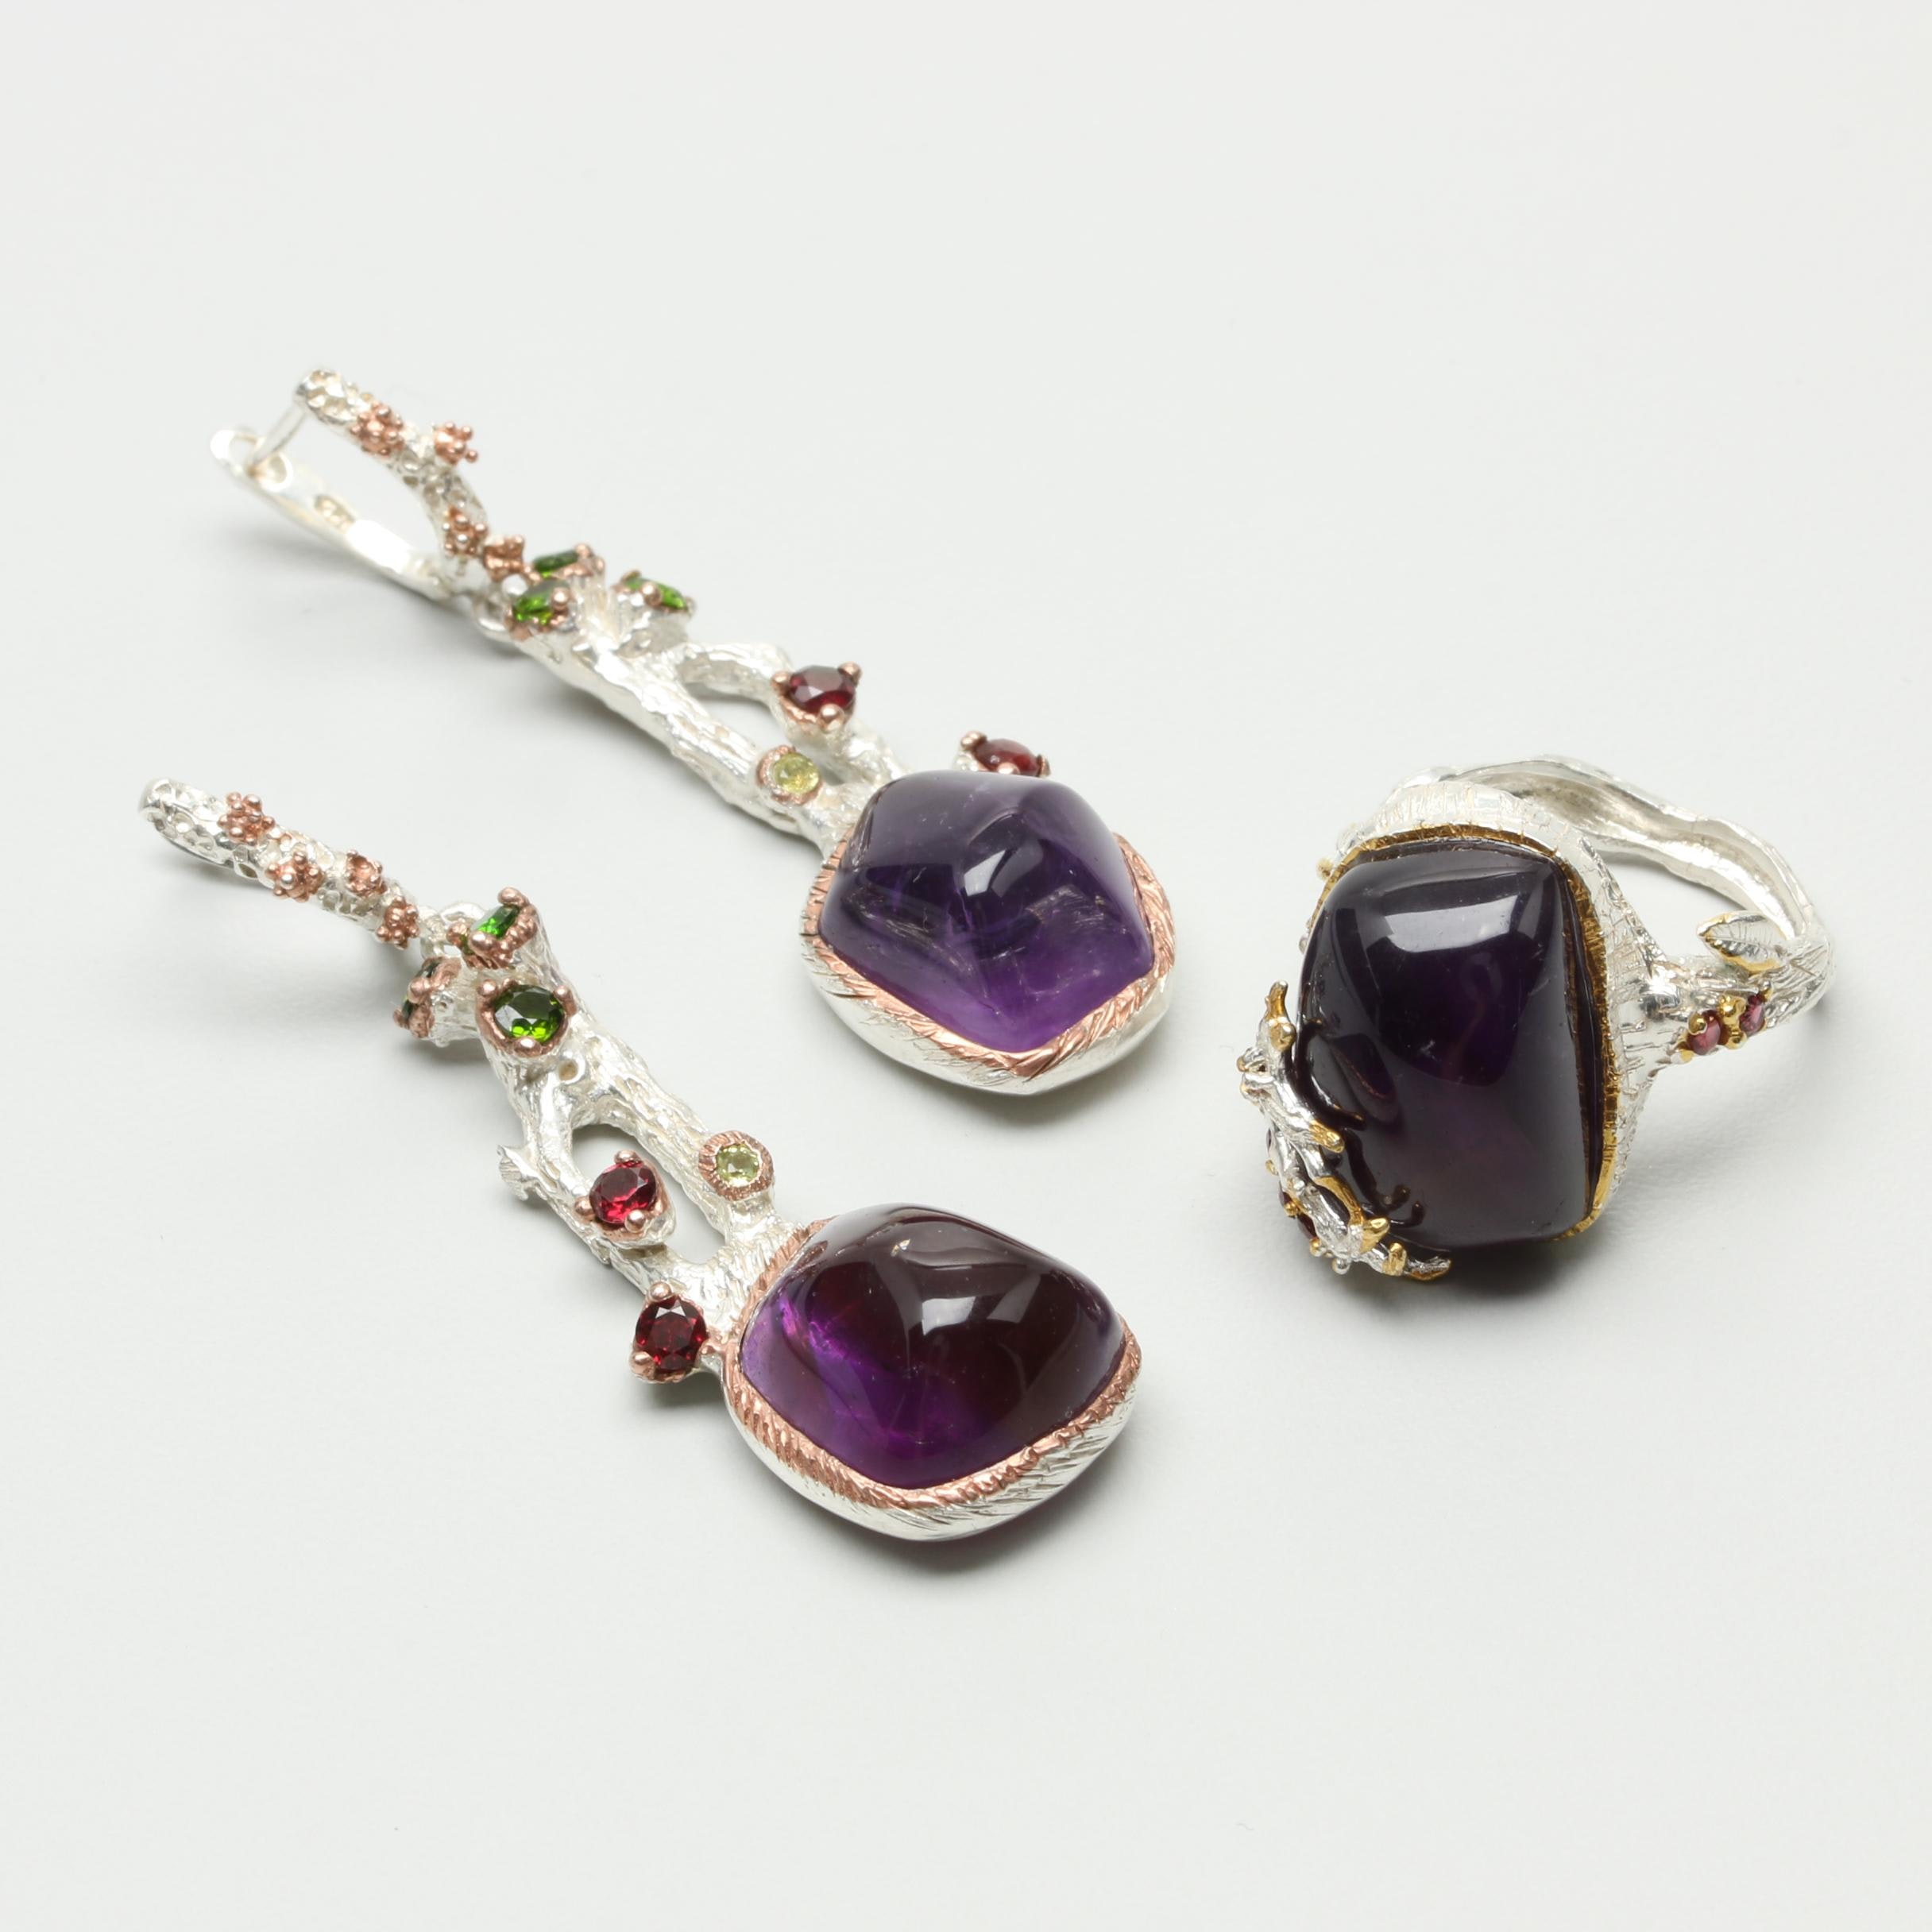 Sterling Silver Amethyst and Gemstone Ring and Earrings